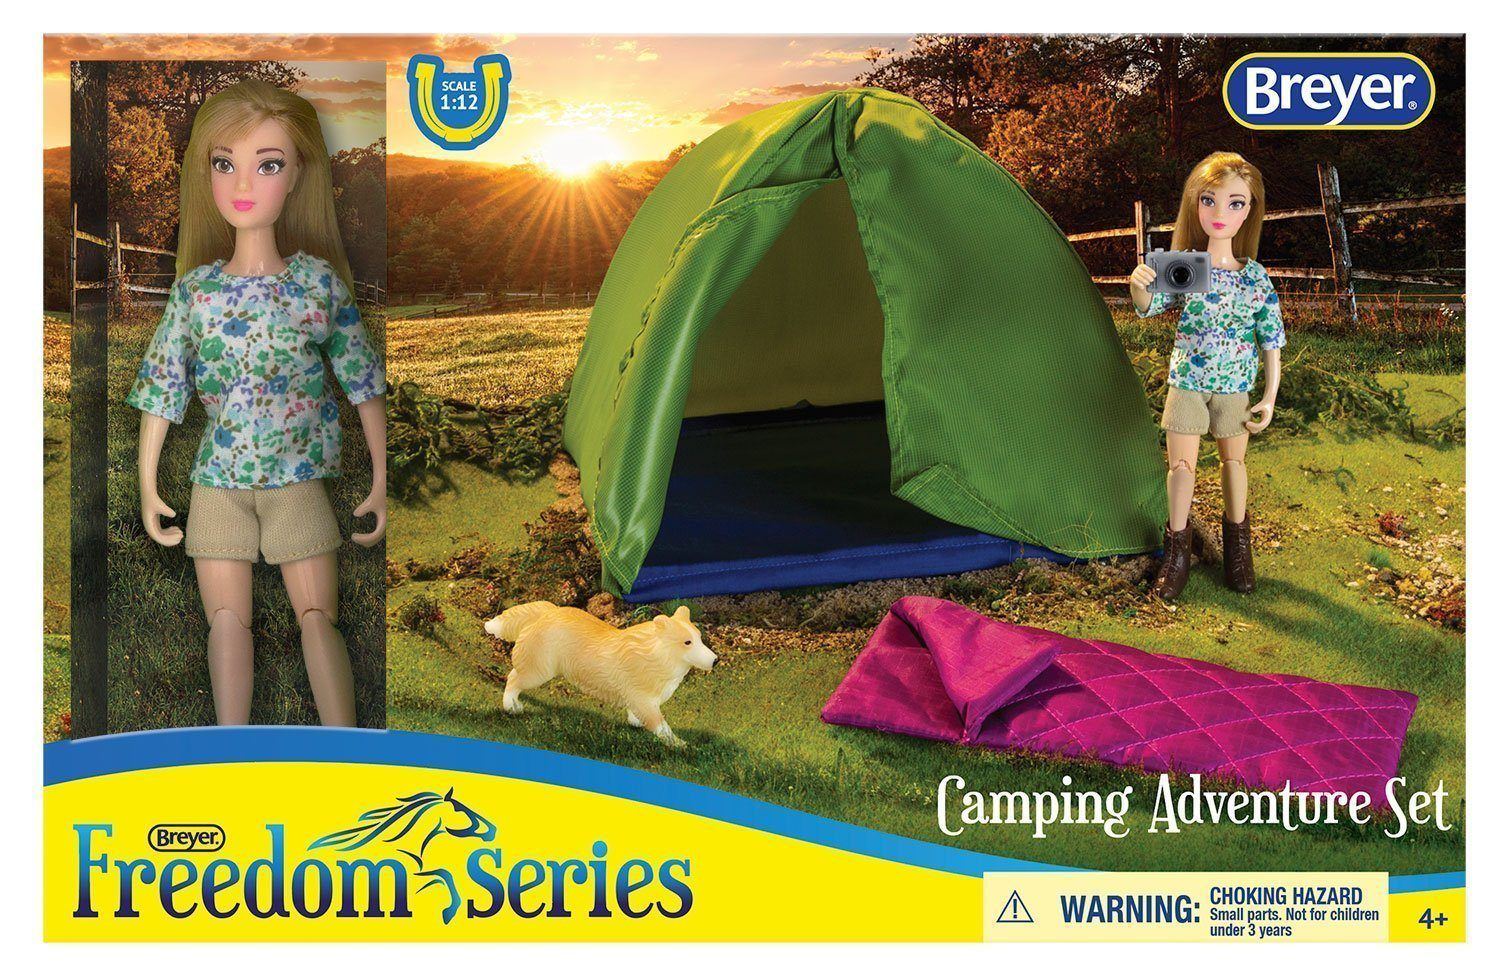 Breyer #62049 Camping Adventure Set - New Factory Sealed